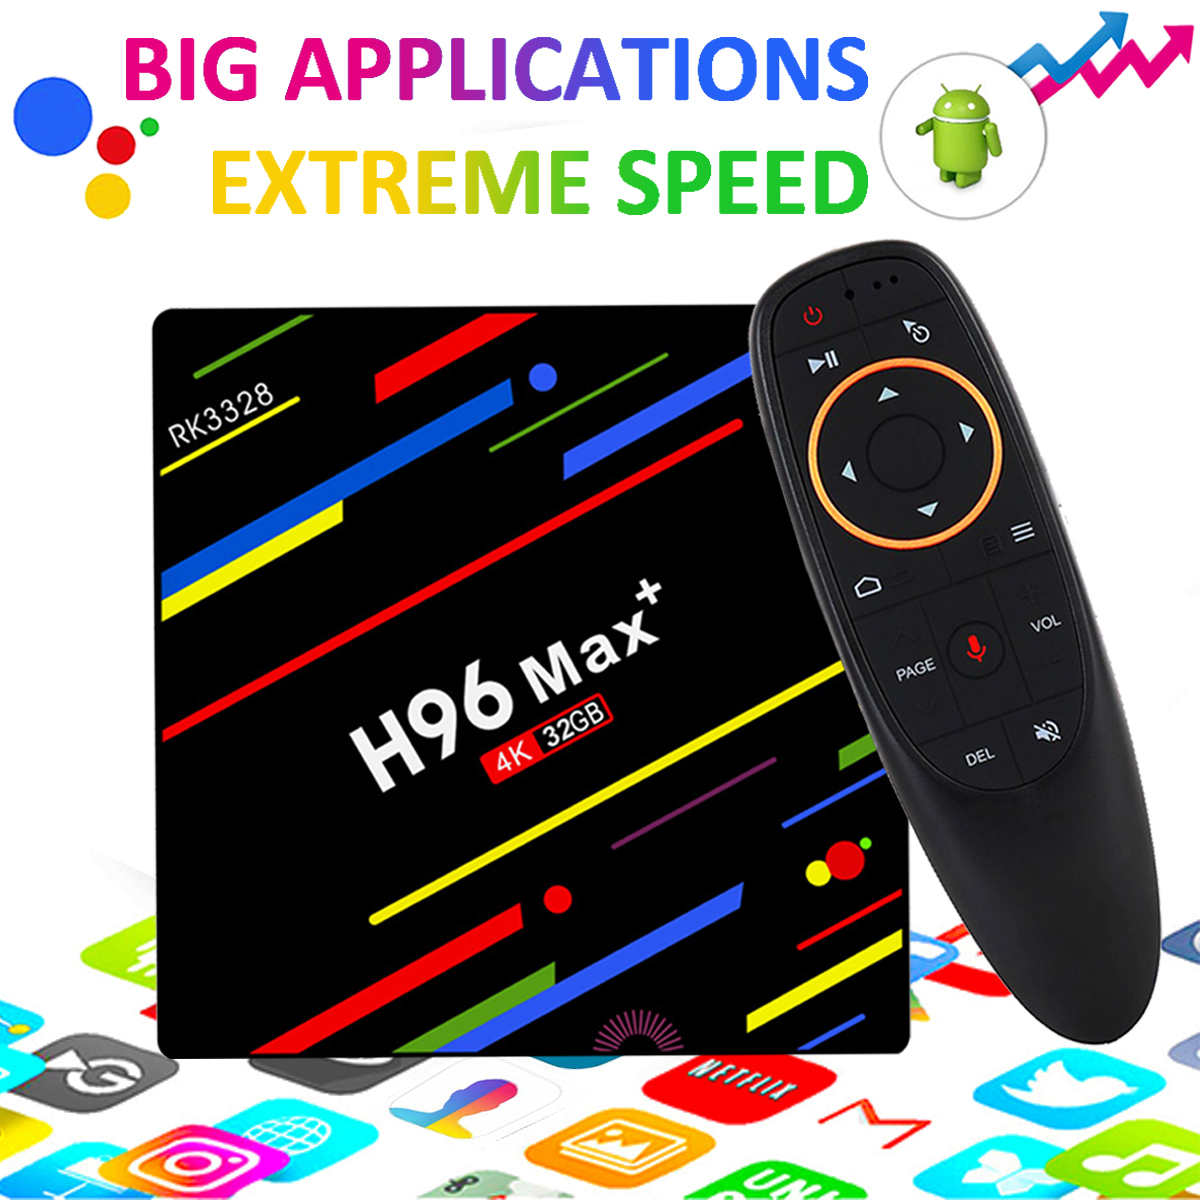 TV BOX - H96 Max Plus RK3328 4G/32G Android 8.1 USB3.0 Voice Control TV Box Support HD Netflix 4K US